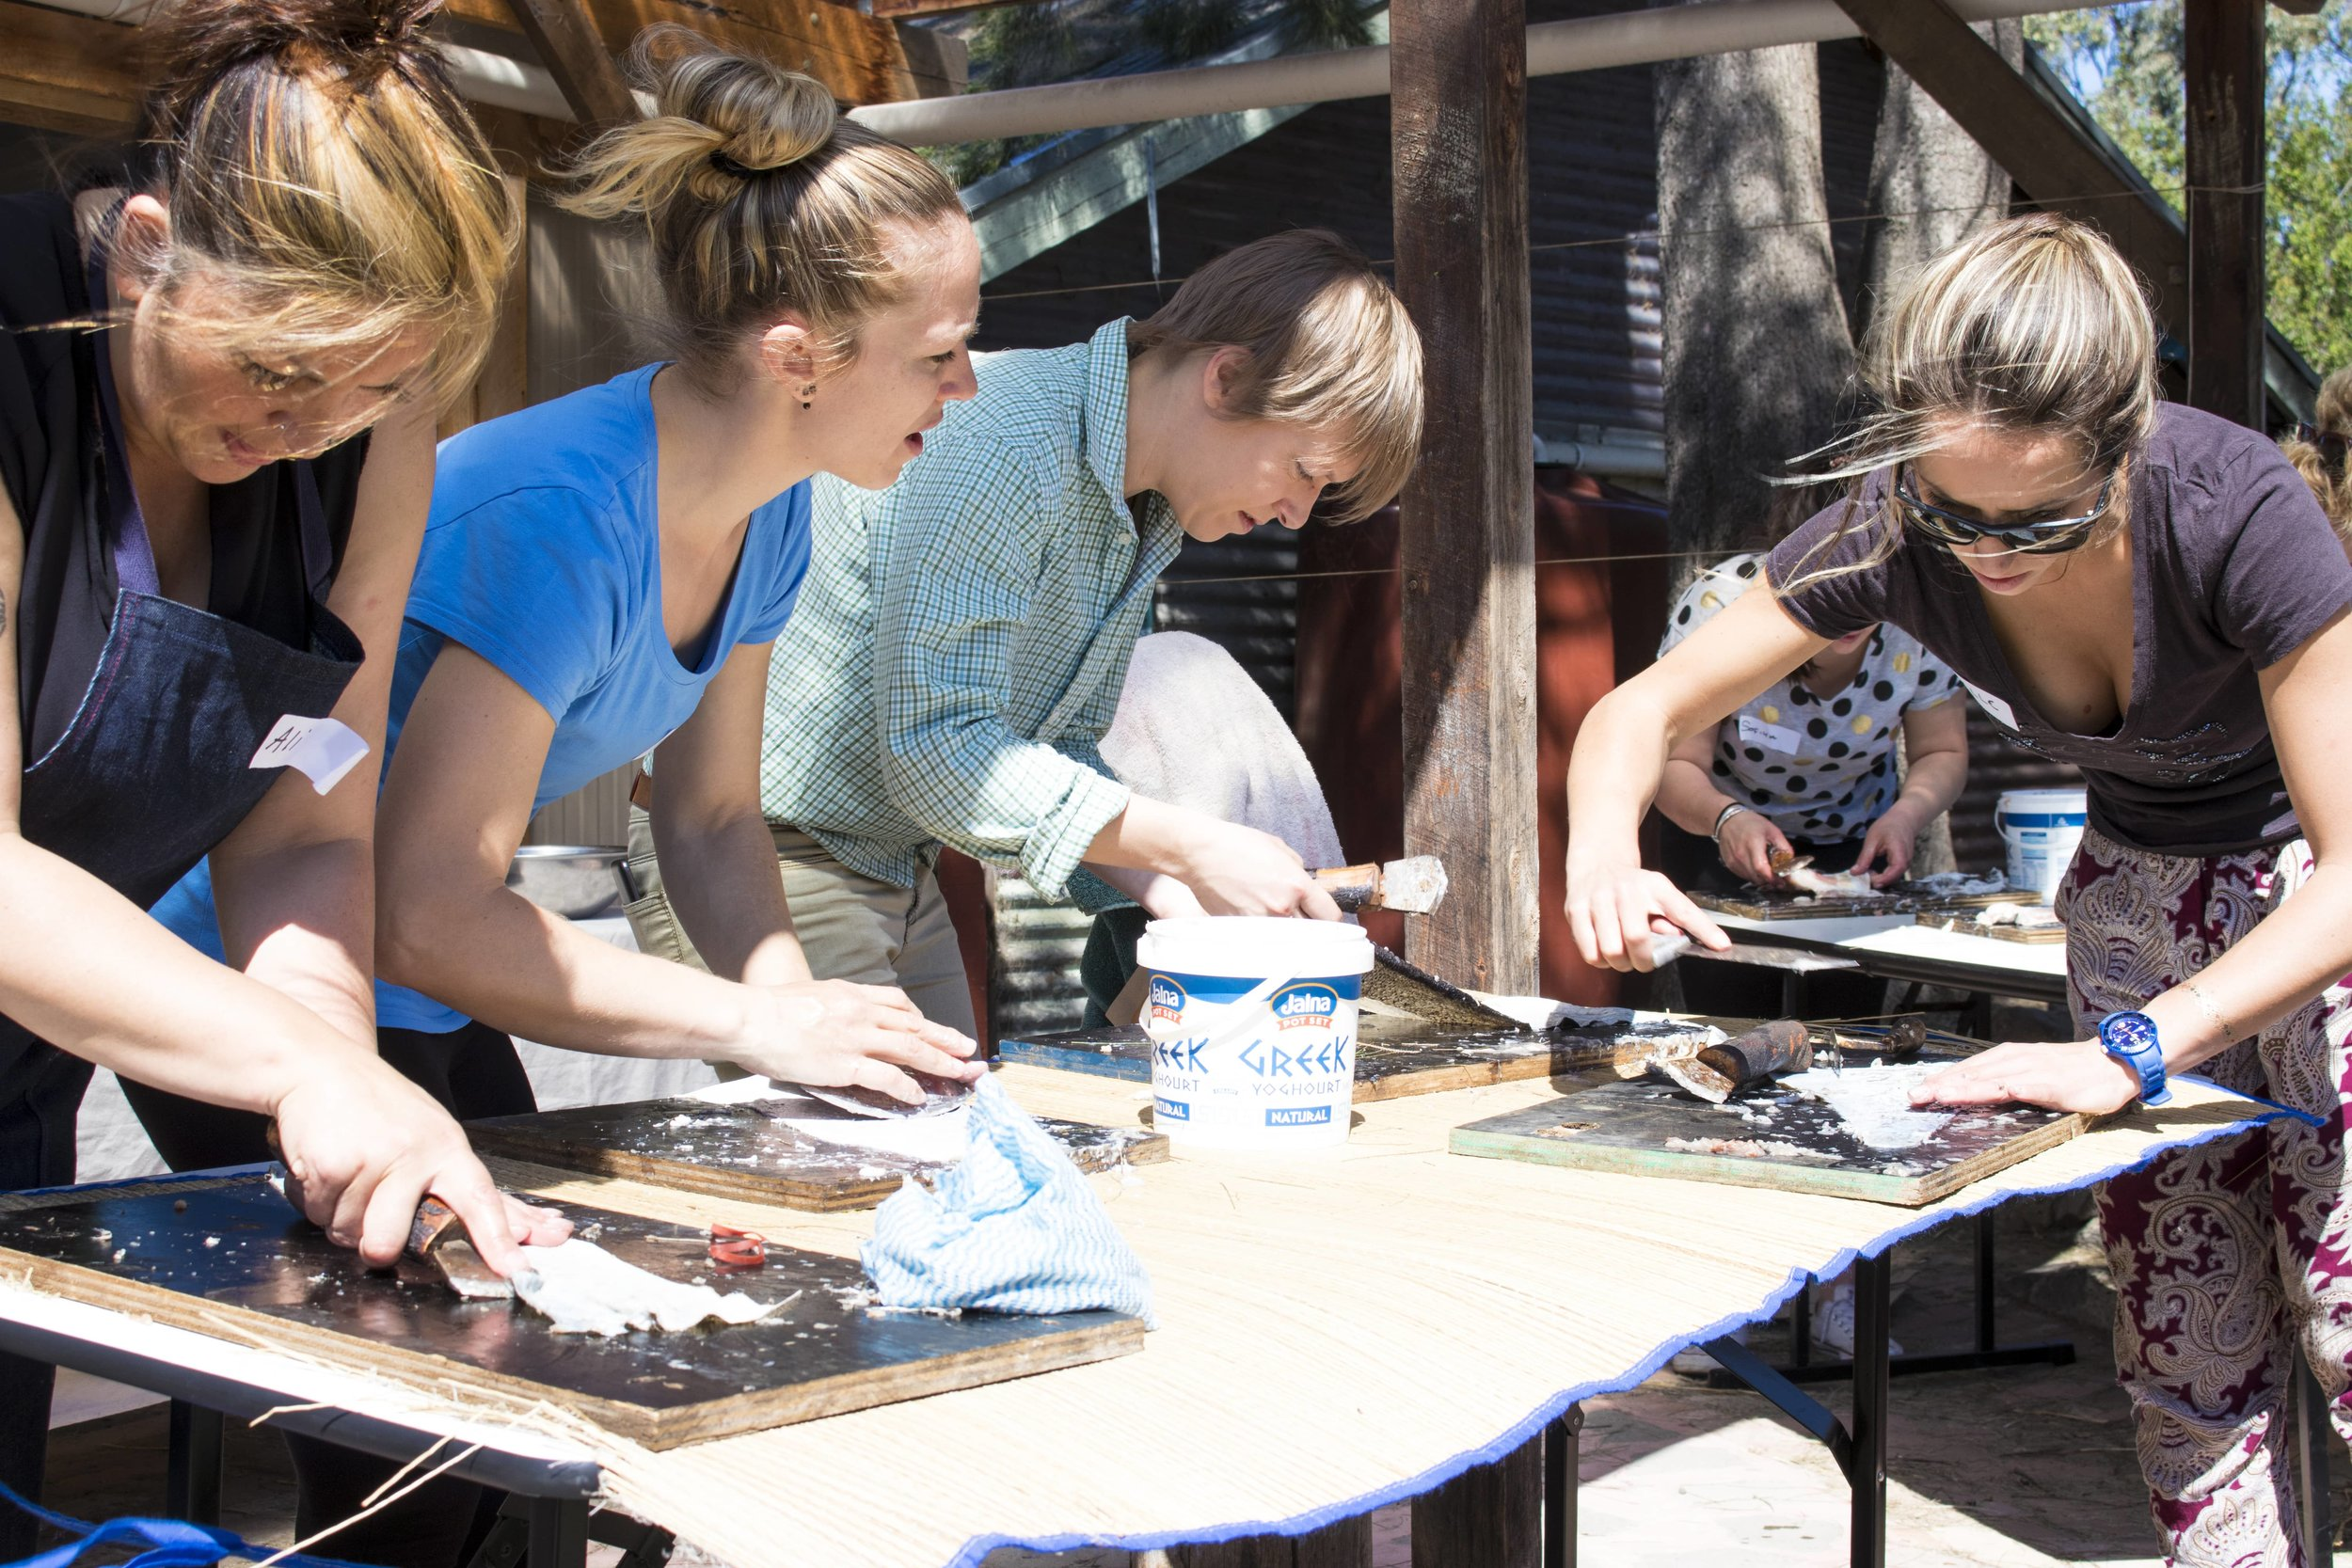 Picture: Our beautiful group from the last fish leather tanning workshop @ Ceres, Melbourne, VIC